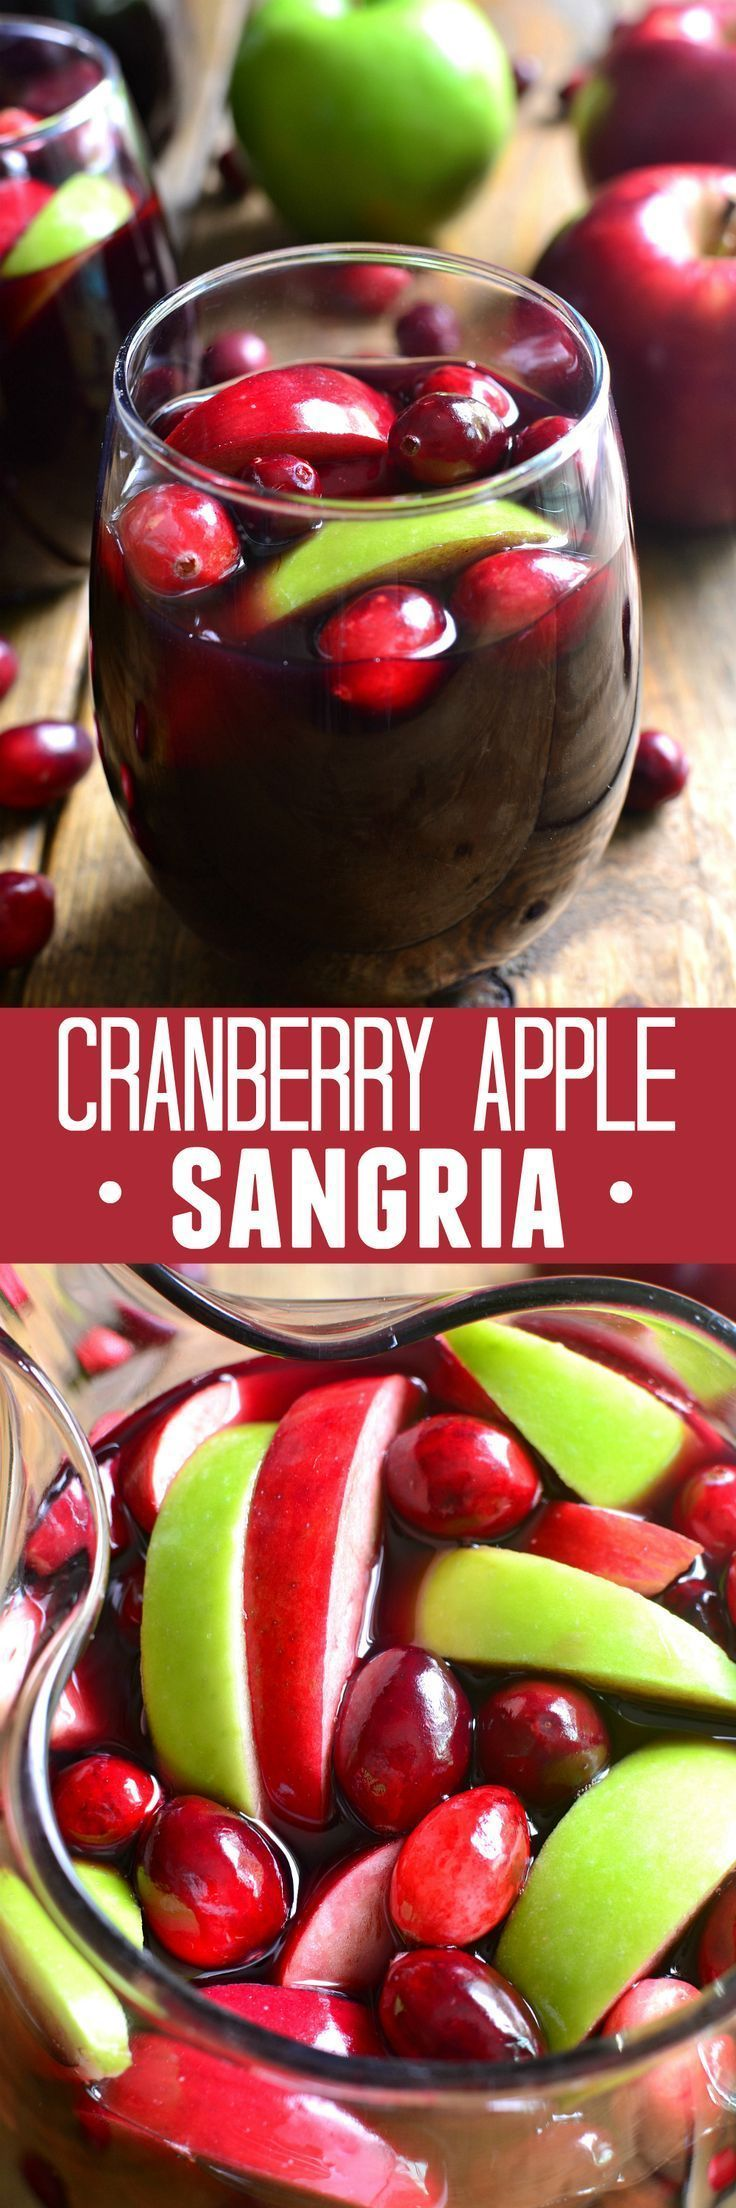 This Cranberry Apple Sangria Is A Deliciously Sweet Taste Of Fall Loaded With Fresh Seasonal Fruit And Packed With Flavor It S Recipes Food Sangria Recipes